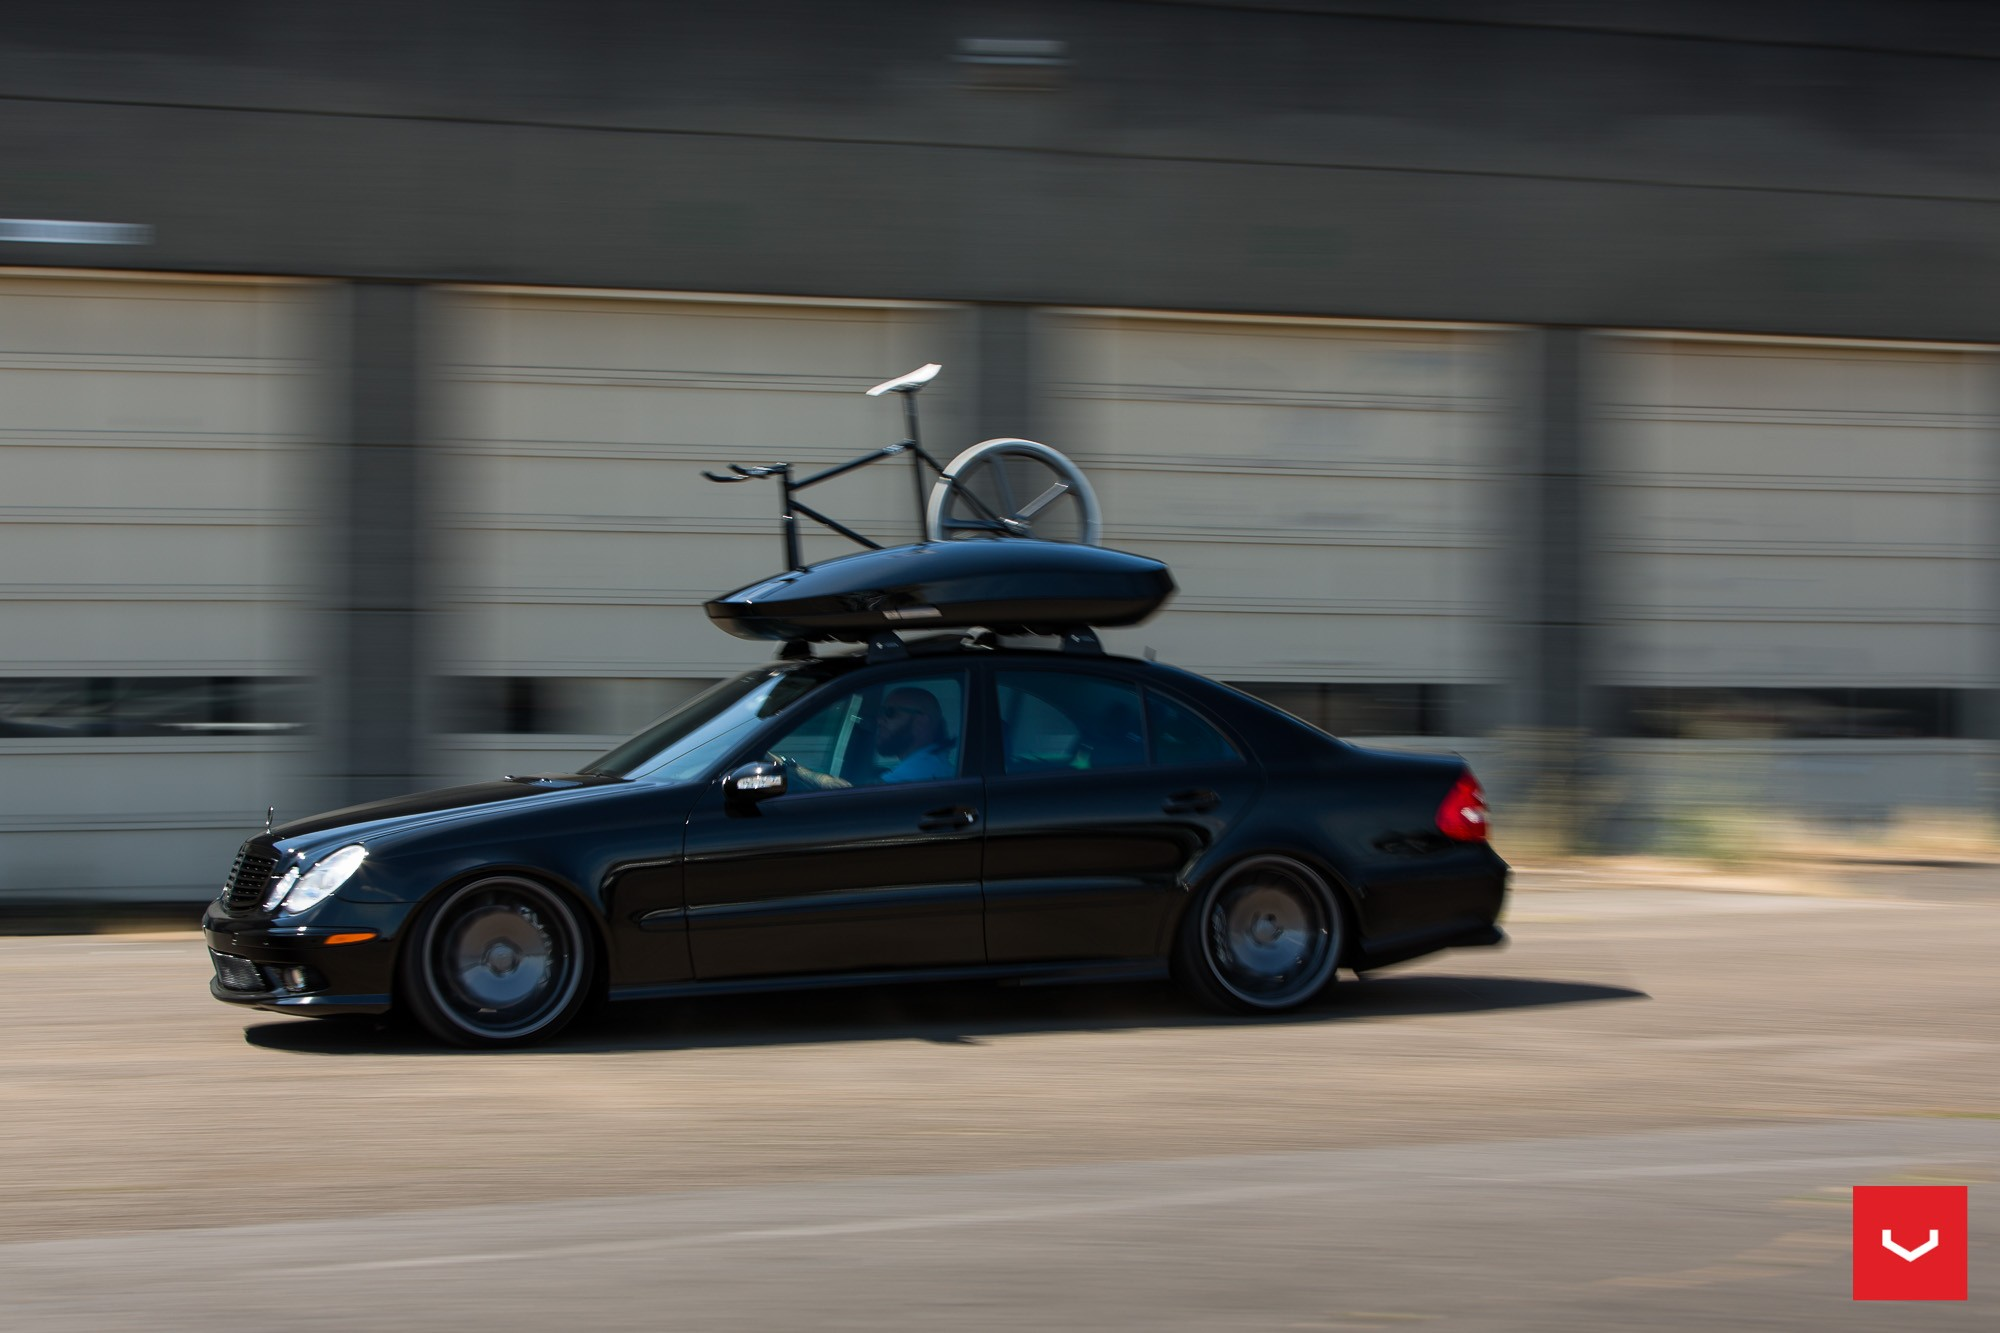 All Black Mercedes E55 Amg Rides On Vossen Wheels Carries